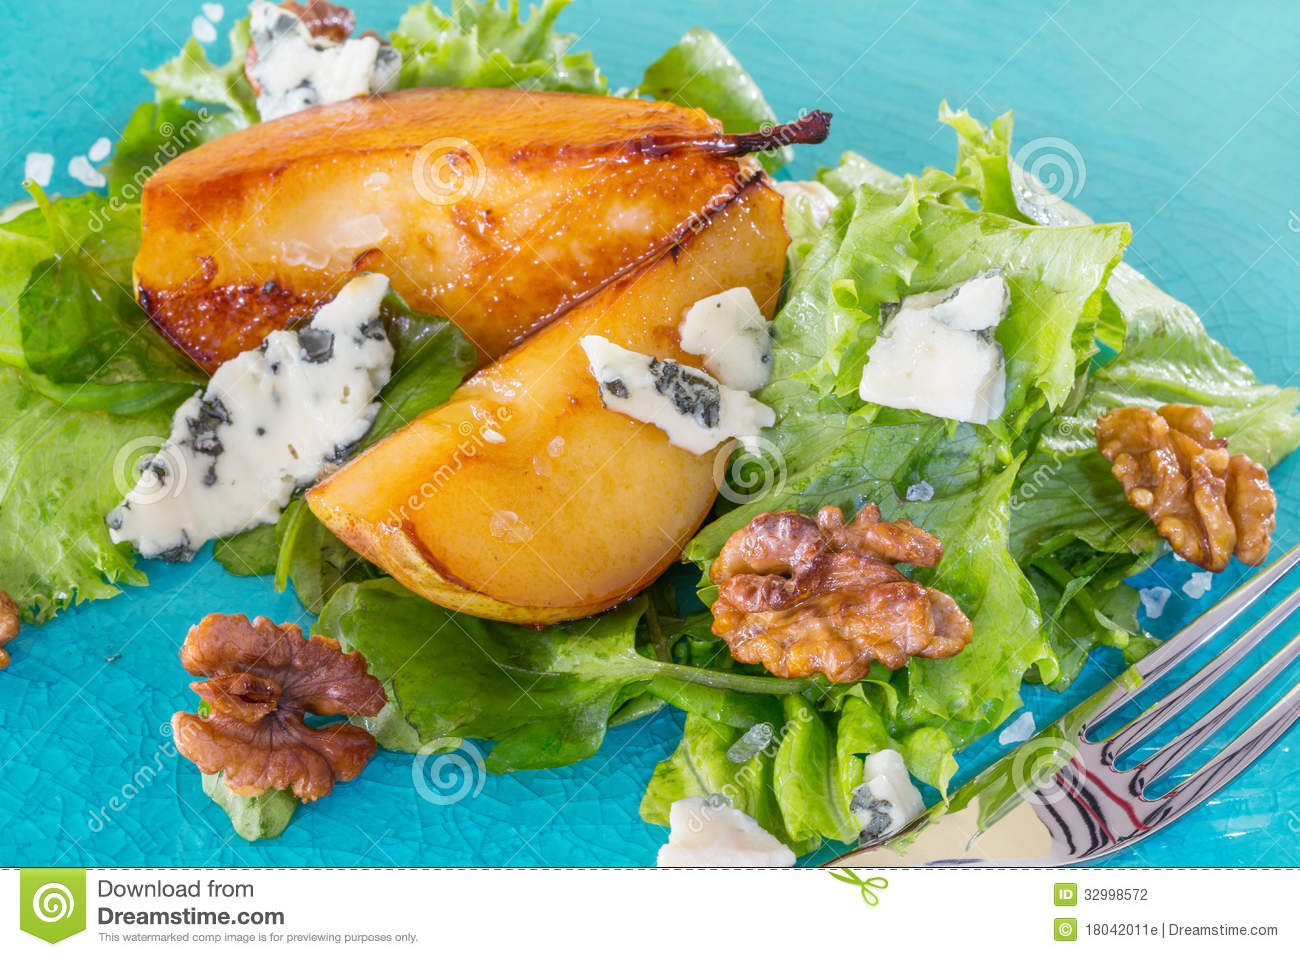 Salad with pears, walnuts and blue cheese